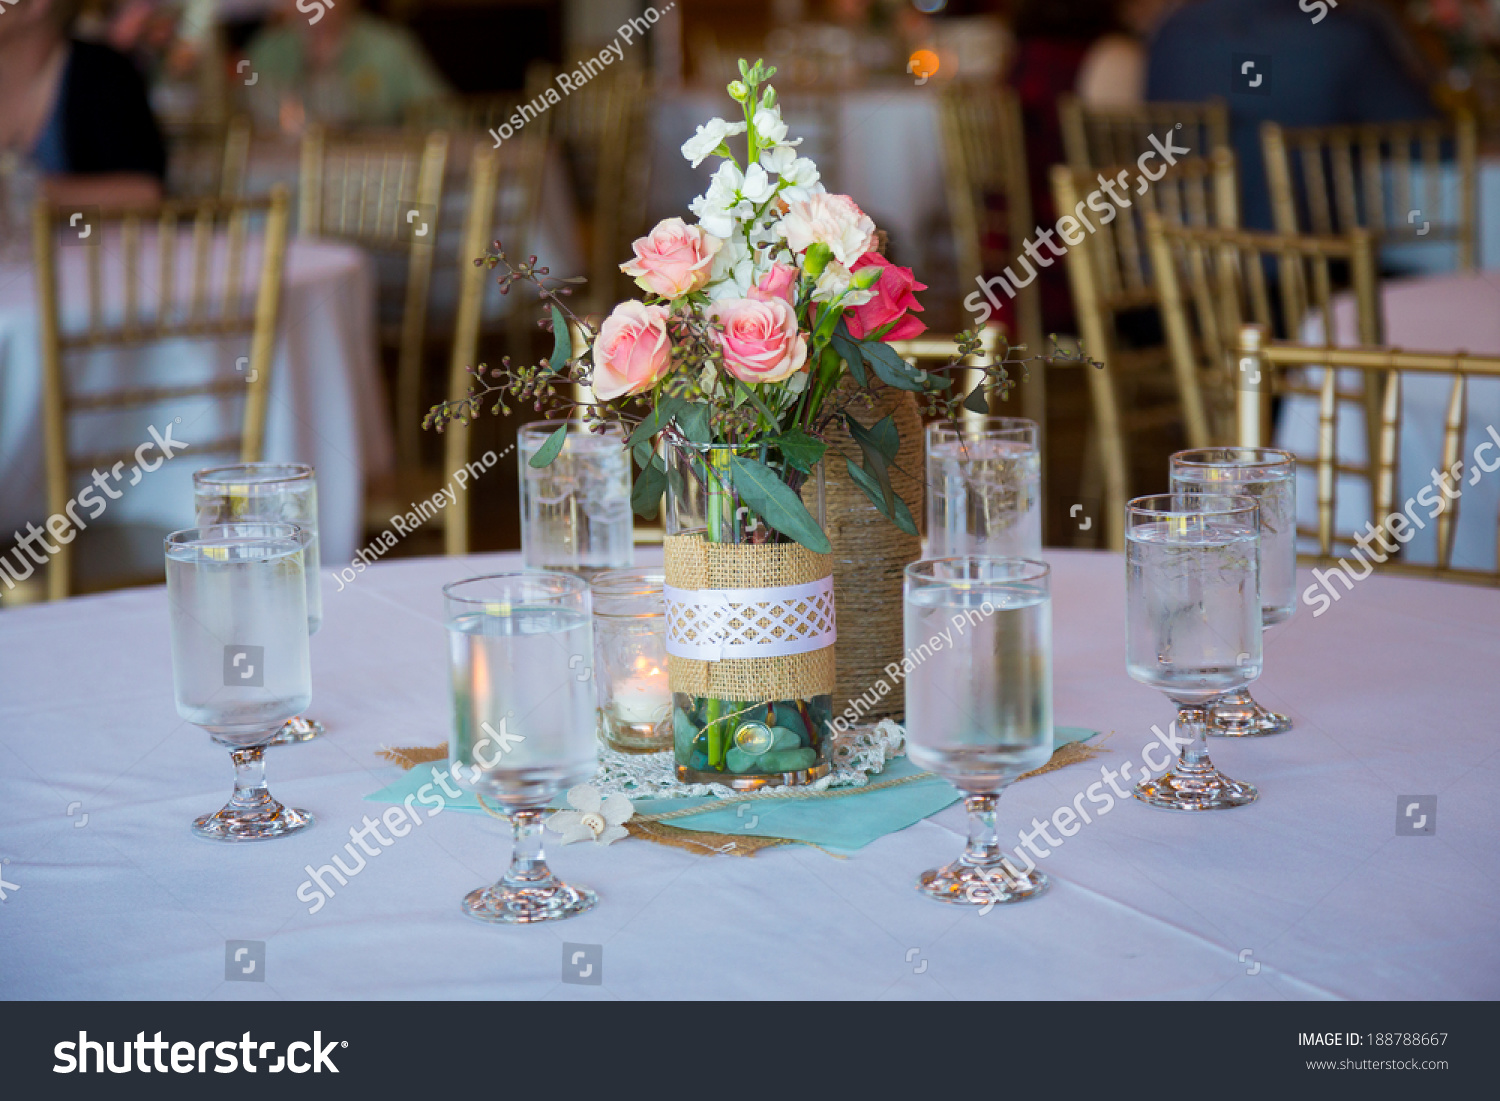 Diy Wedding Decor Table Centerpieces With Wine Bottles